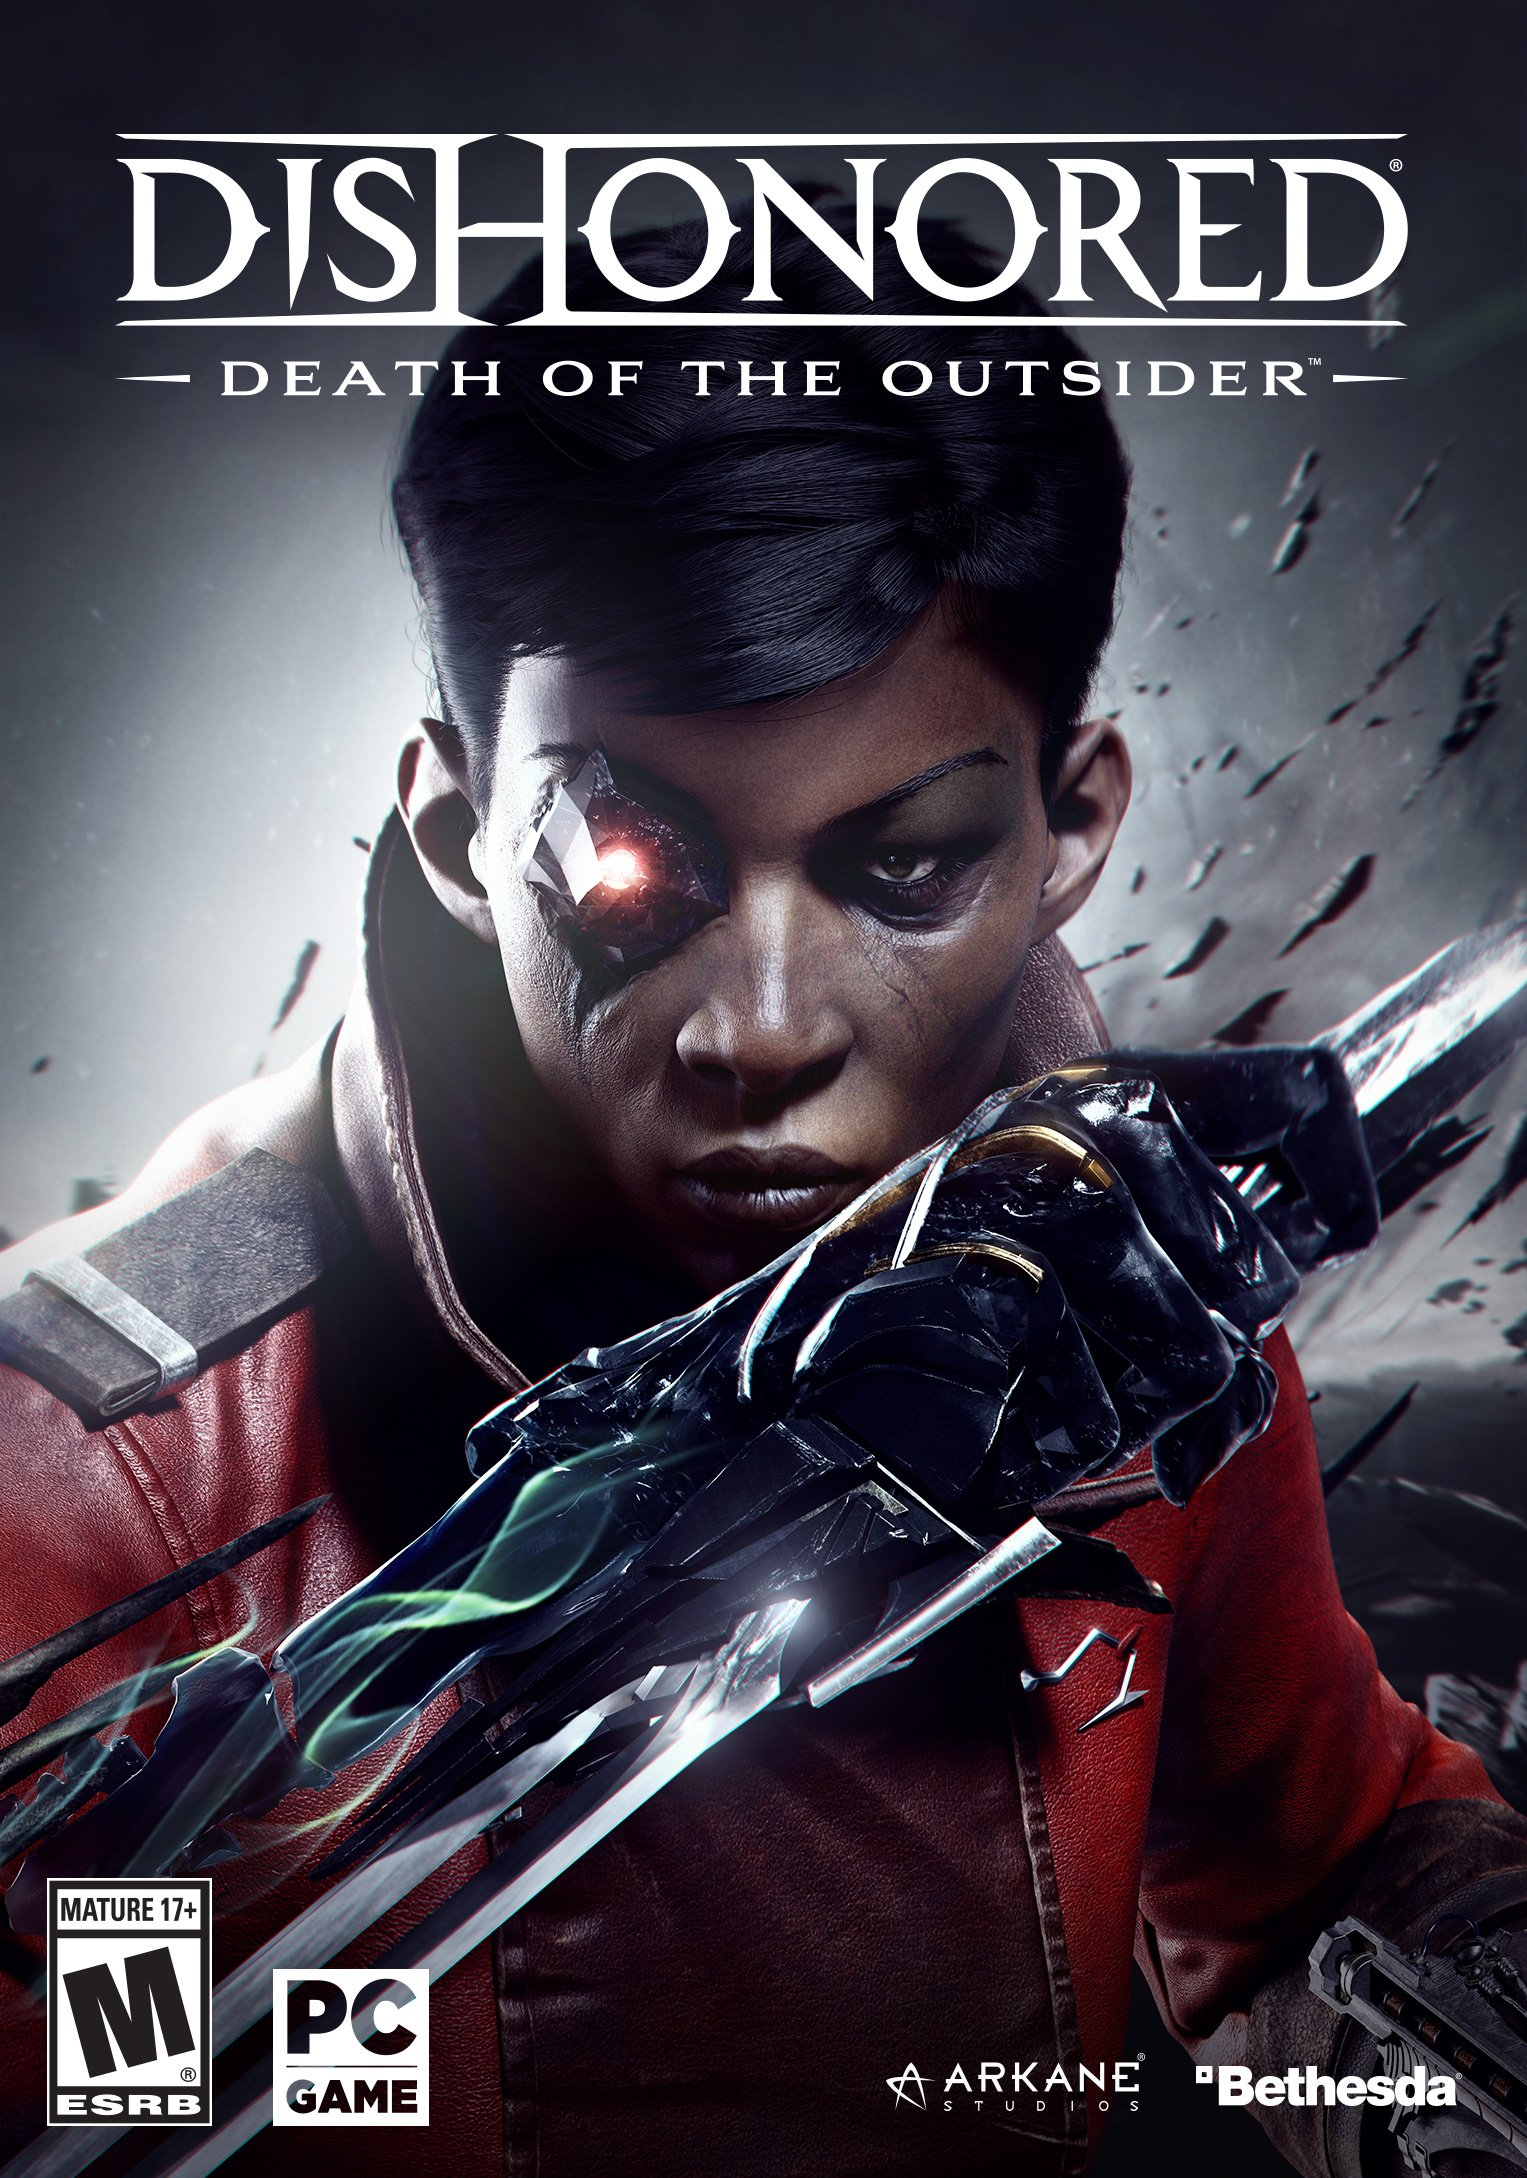 Image result for Dishonored Death Of The Outsider cover pc